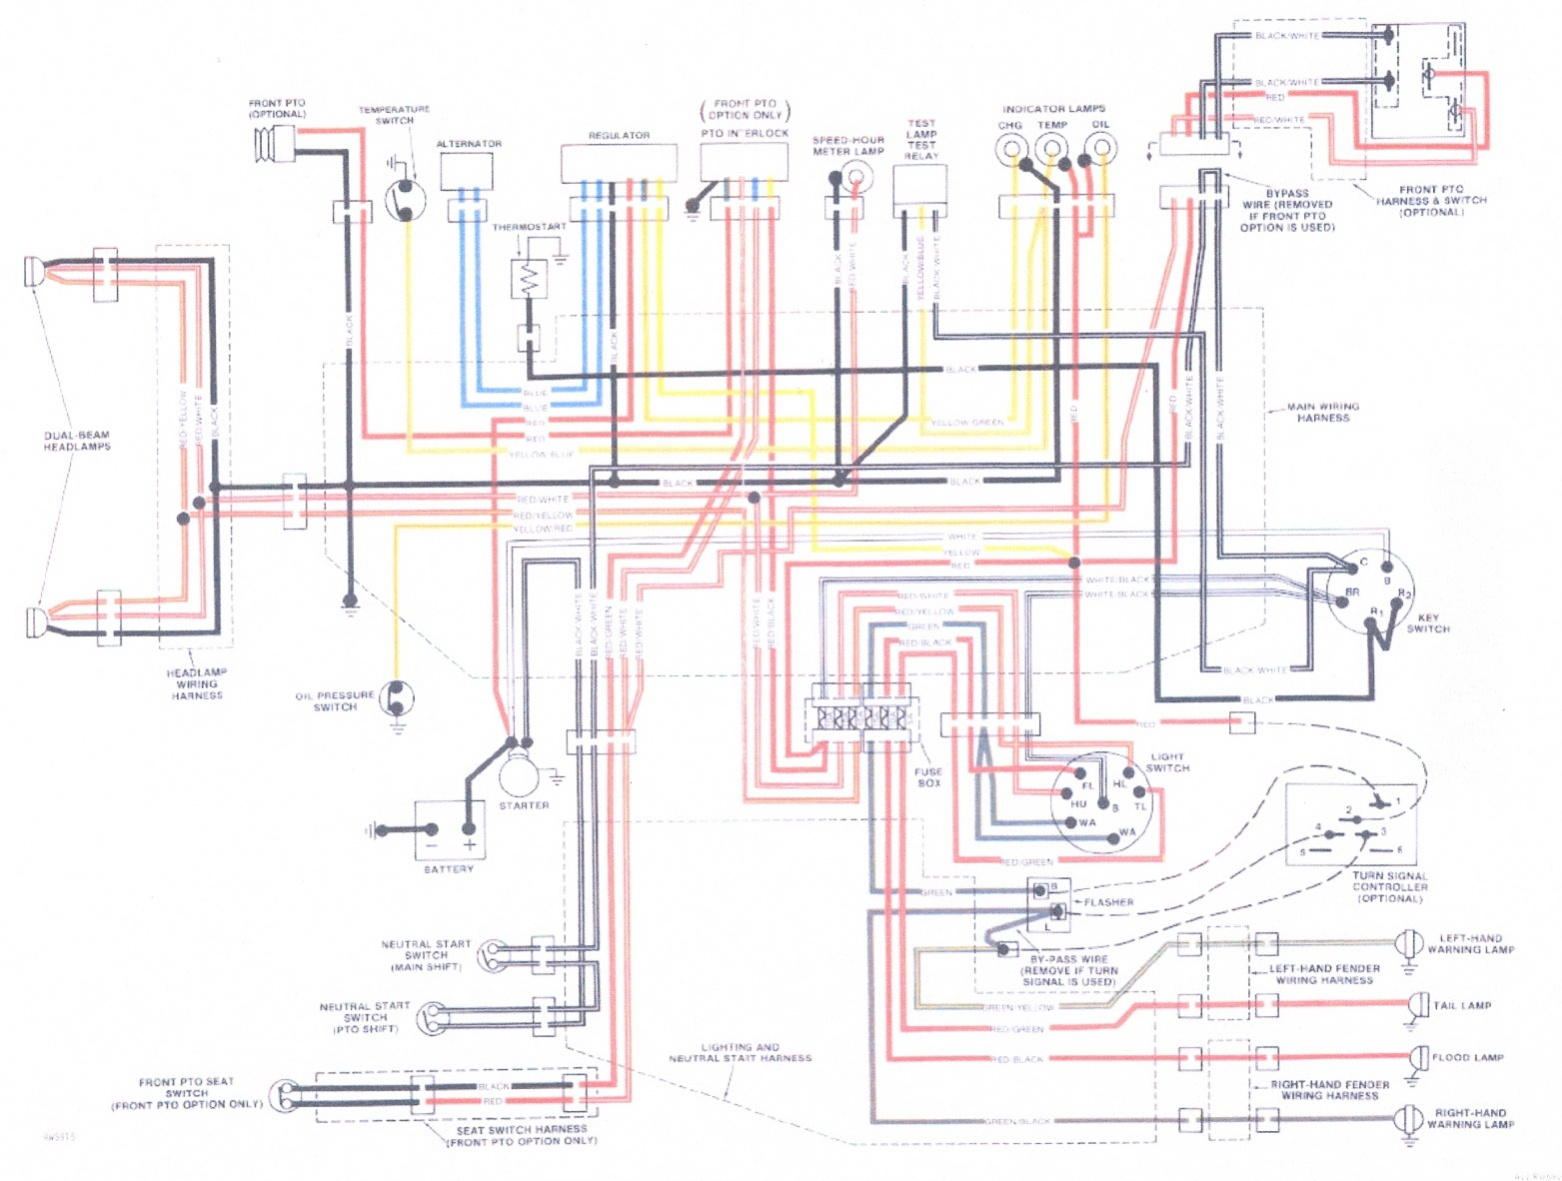 [DIAGRAM_3NM]  need a wiring color code | My Tractor Forum | John Deere Turn Signal Wiring Schematics |  | My Tractor Forum